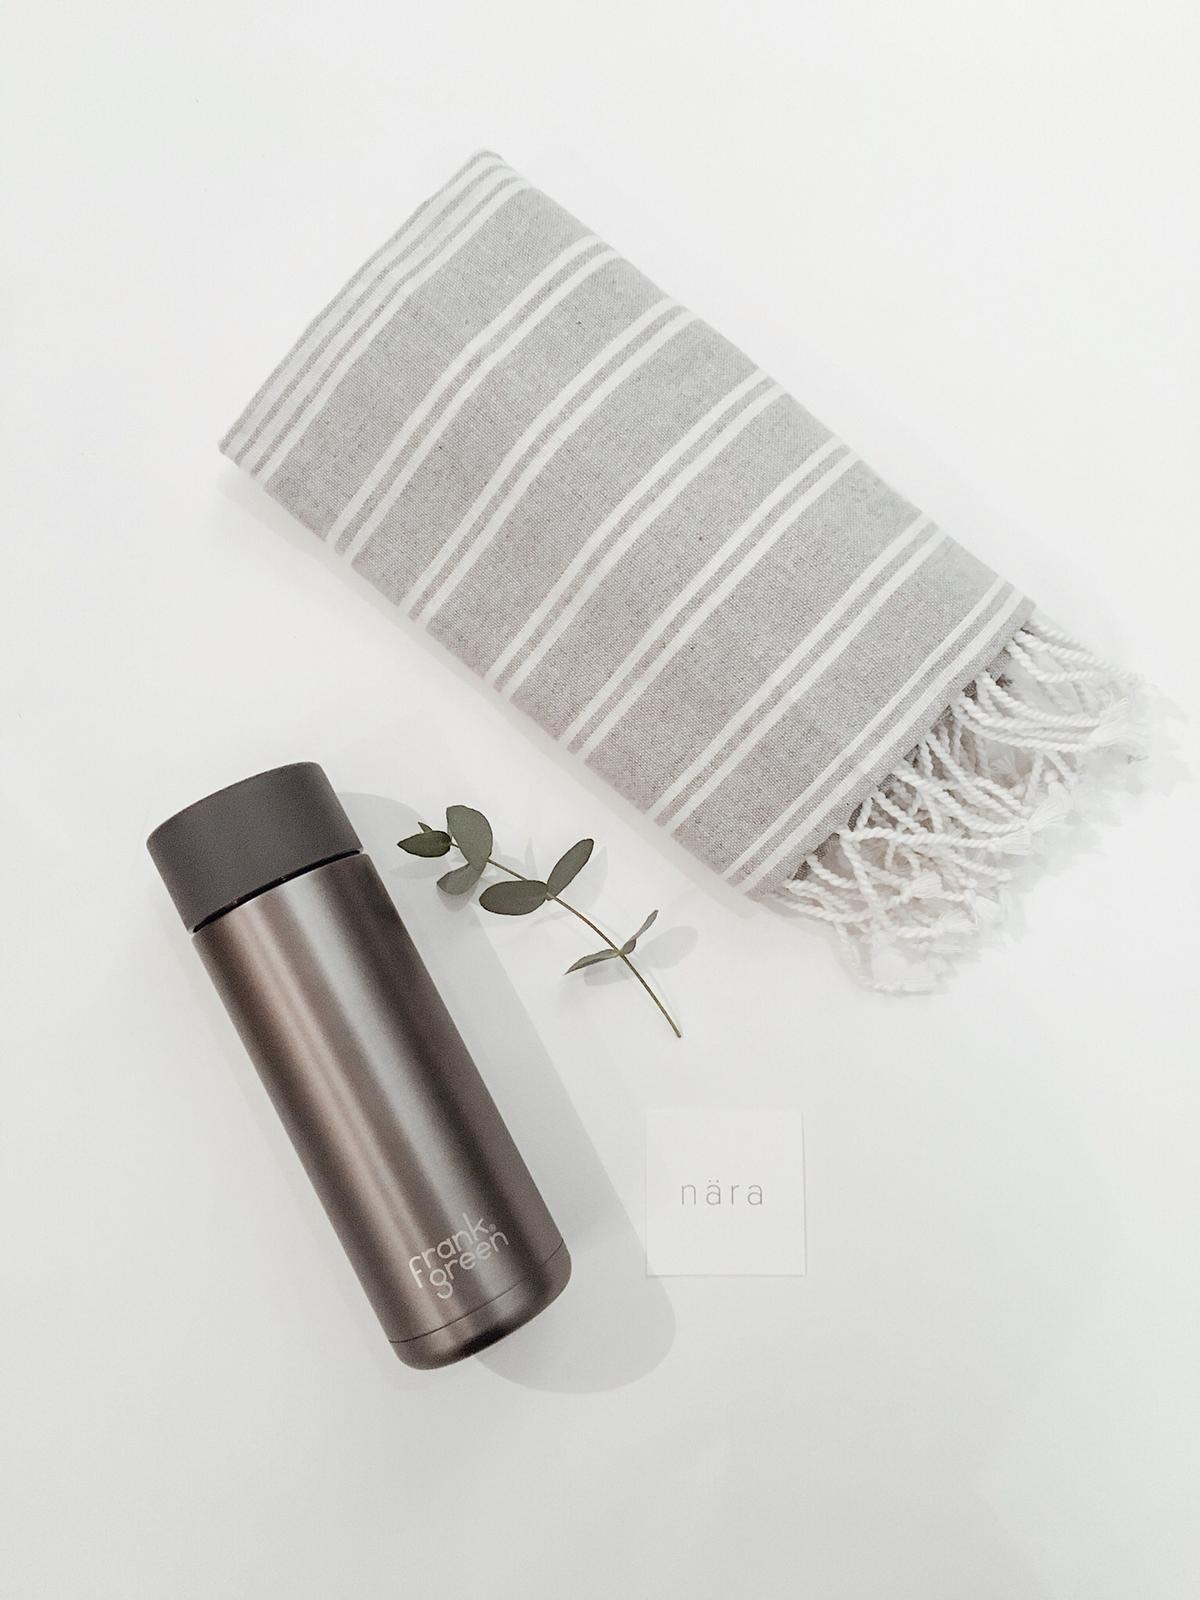 On The Go £44.50 - On The Go is a thoughtful gift for all those who are quite literally on the go. With a beautiful Frank Green reusable Water Bottle that keeps water cold for up to 10 hours and an elegant super absorbing, fast drying peshtemal towel. This gift is perfect for anyone living a fast paced life. We think it would be brilliant for anyone who loves the gym, camping, festivals and travelling.